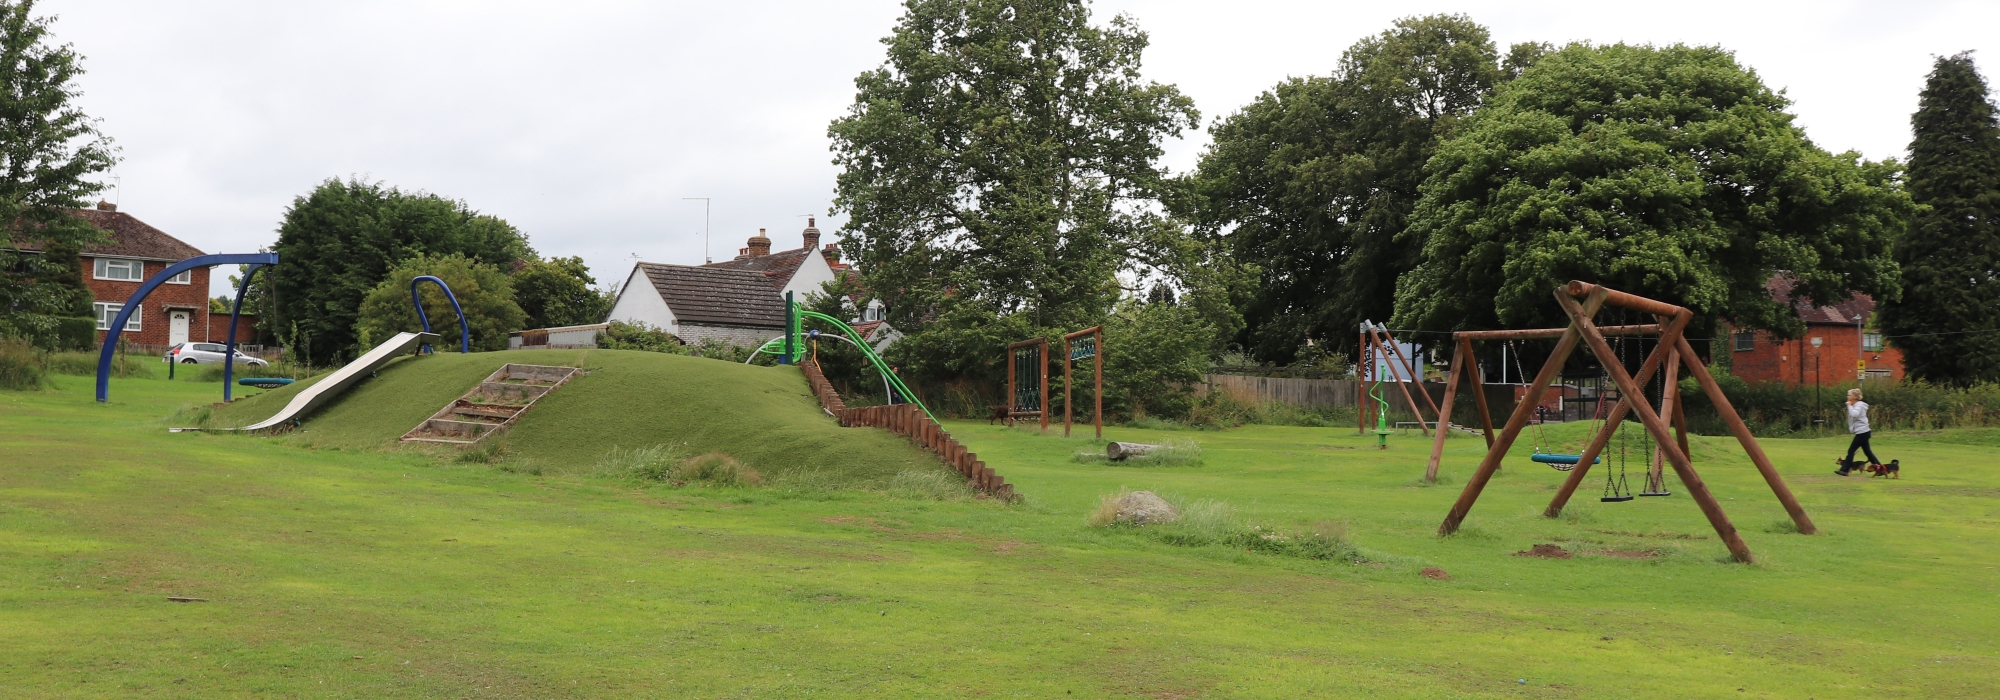 Arley park recreation ground showing childrens play area